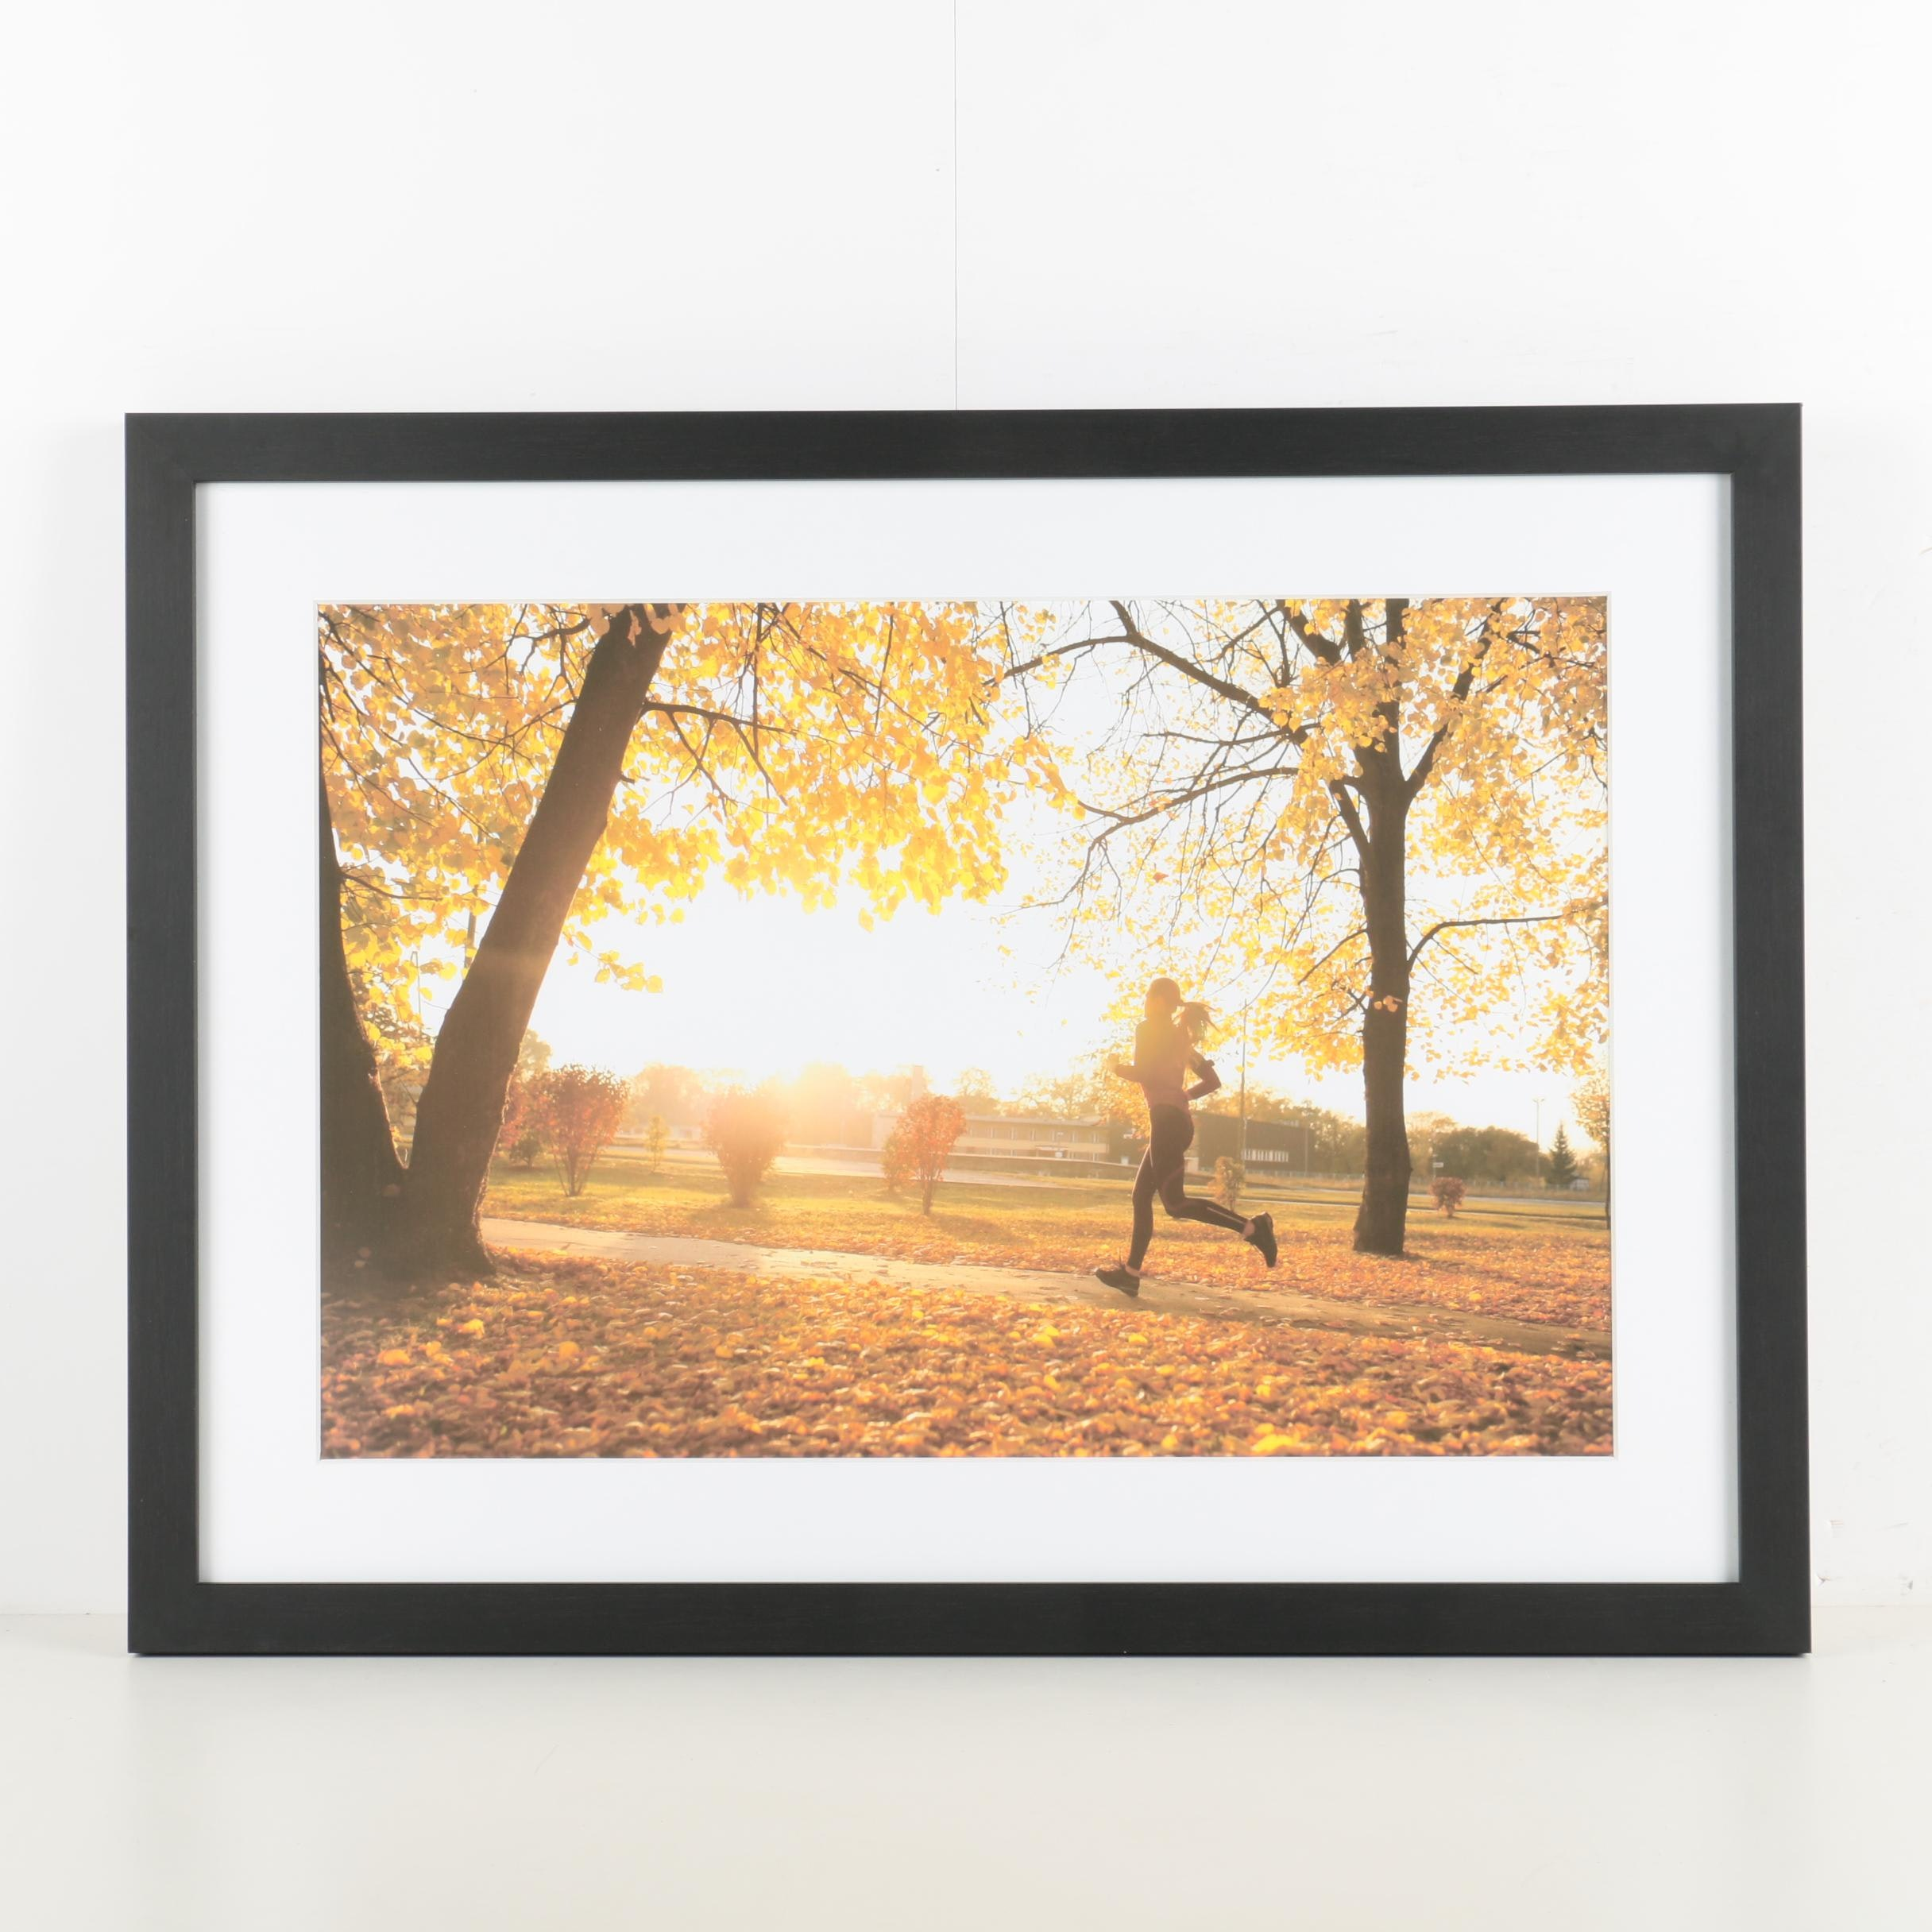 Reproduction Print on Paper of a Runner in a Park